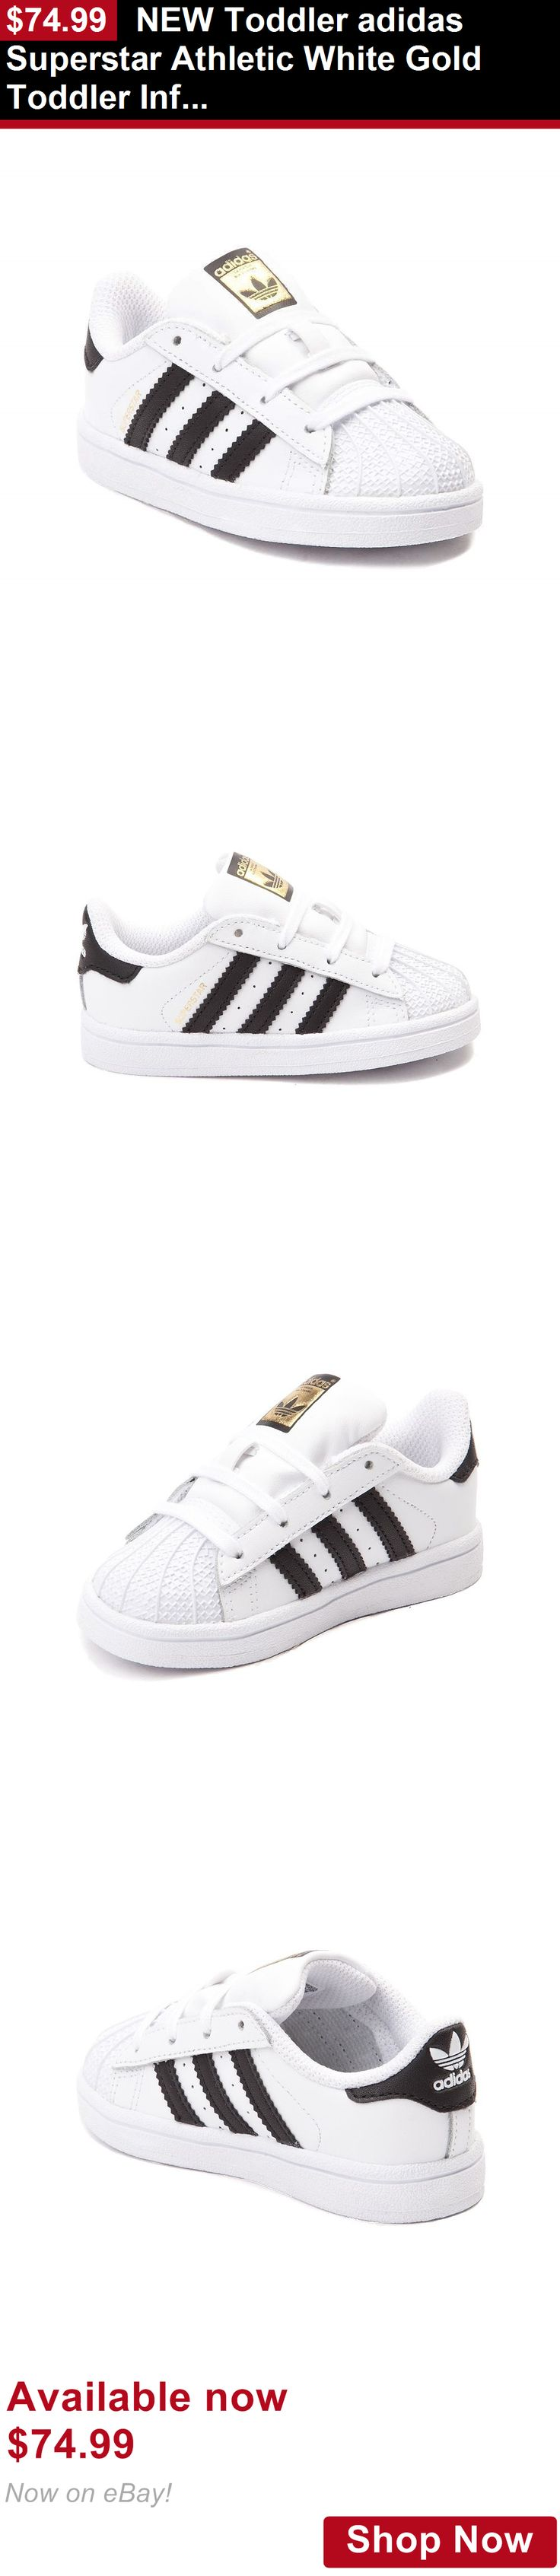 Baby girls clothing shoes and accessories: New Toddler Adidas Superstar Athletic White Gold Toddler Infant Boys Girl Shoe BUY IT NOW ONLY: $74.99